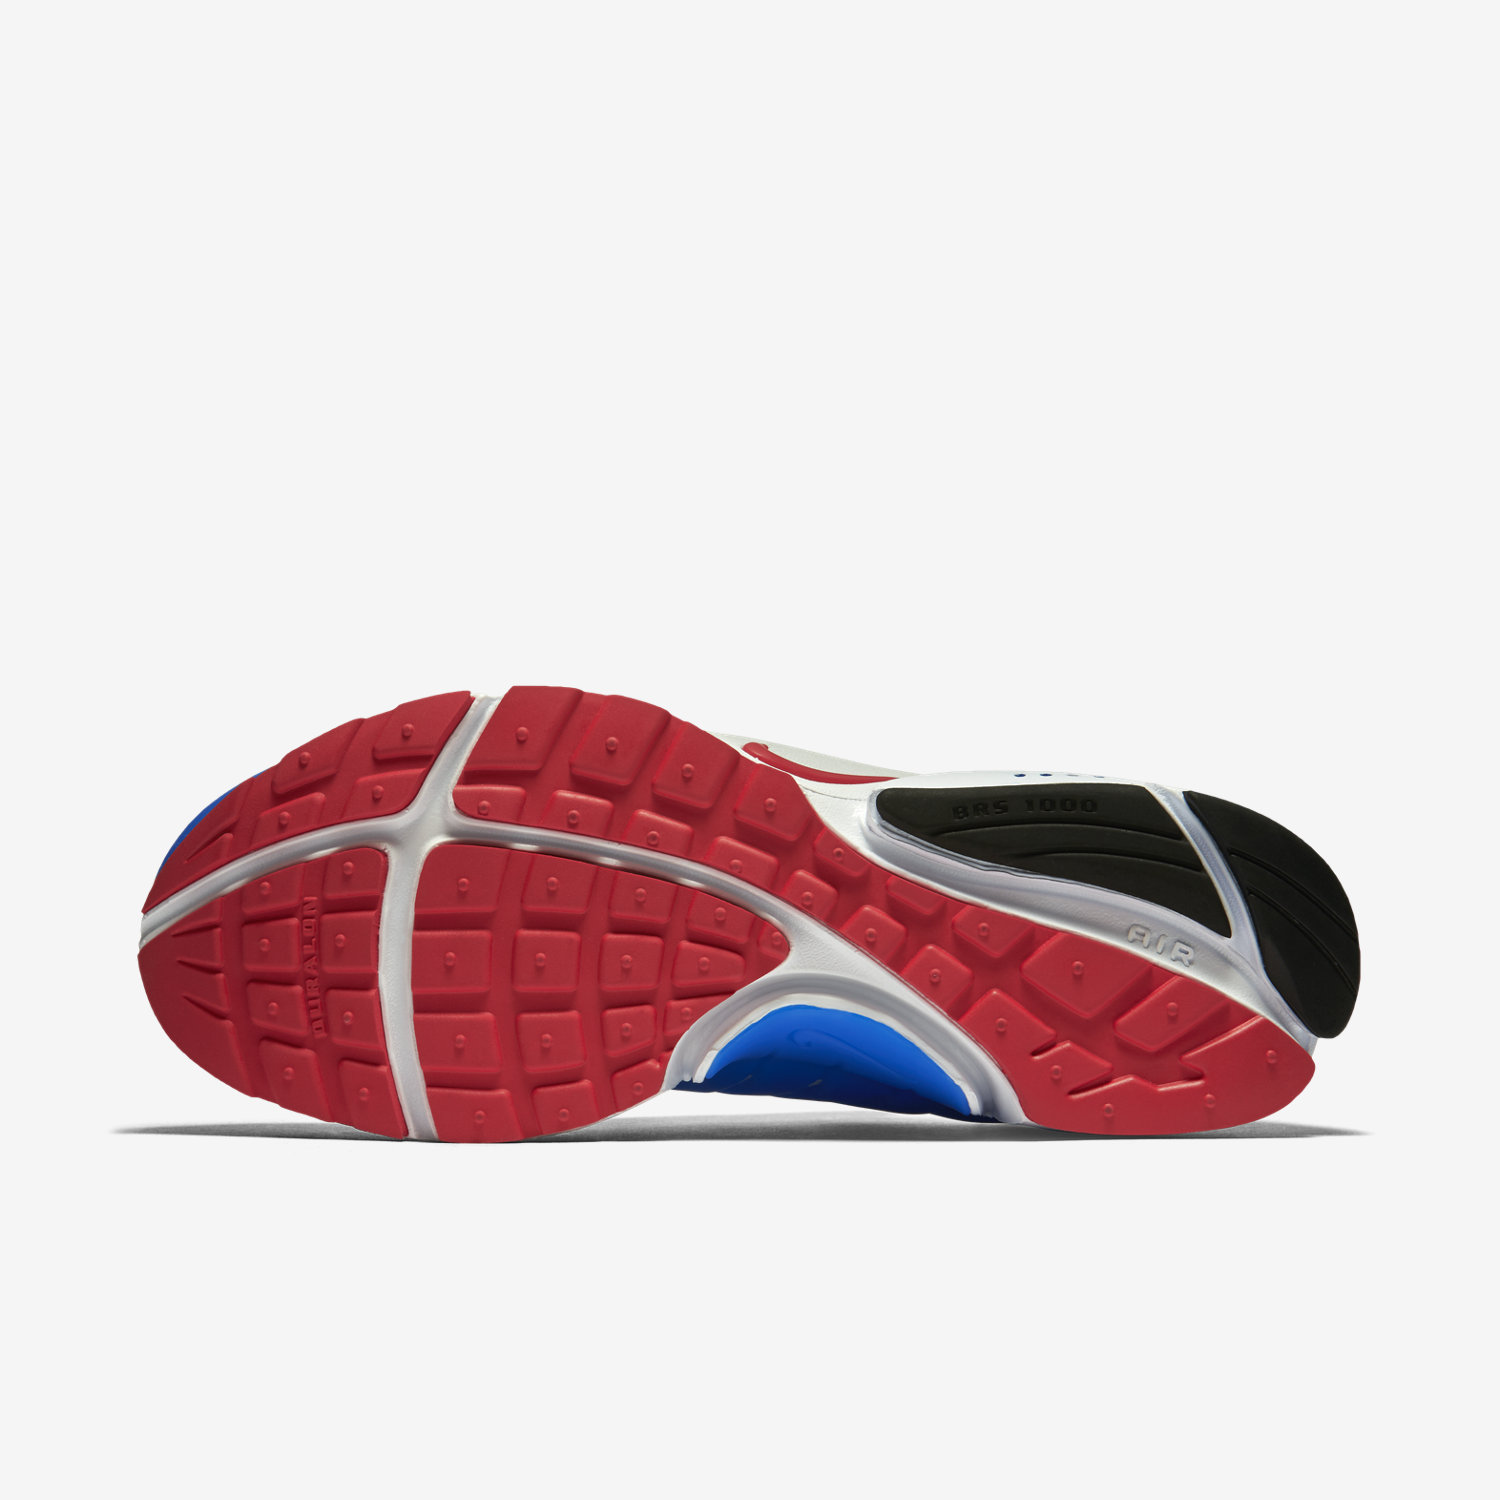 http://images.nike.com/is/image/DotCom/PDP_HERO_ZOOM/NIKE-AIR-PRESTO-ESSENTIAL-848187_004_B_PREM.jpg